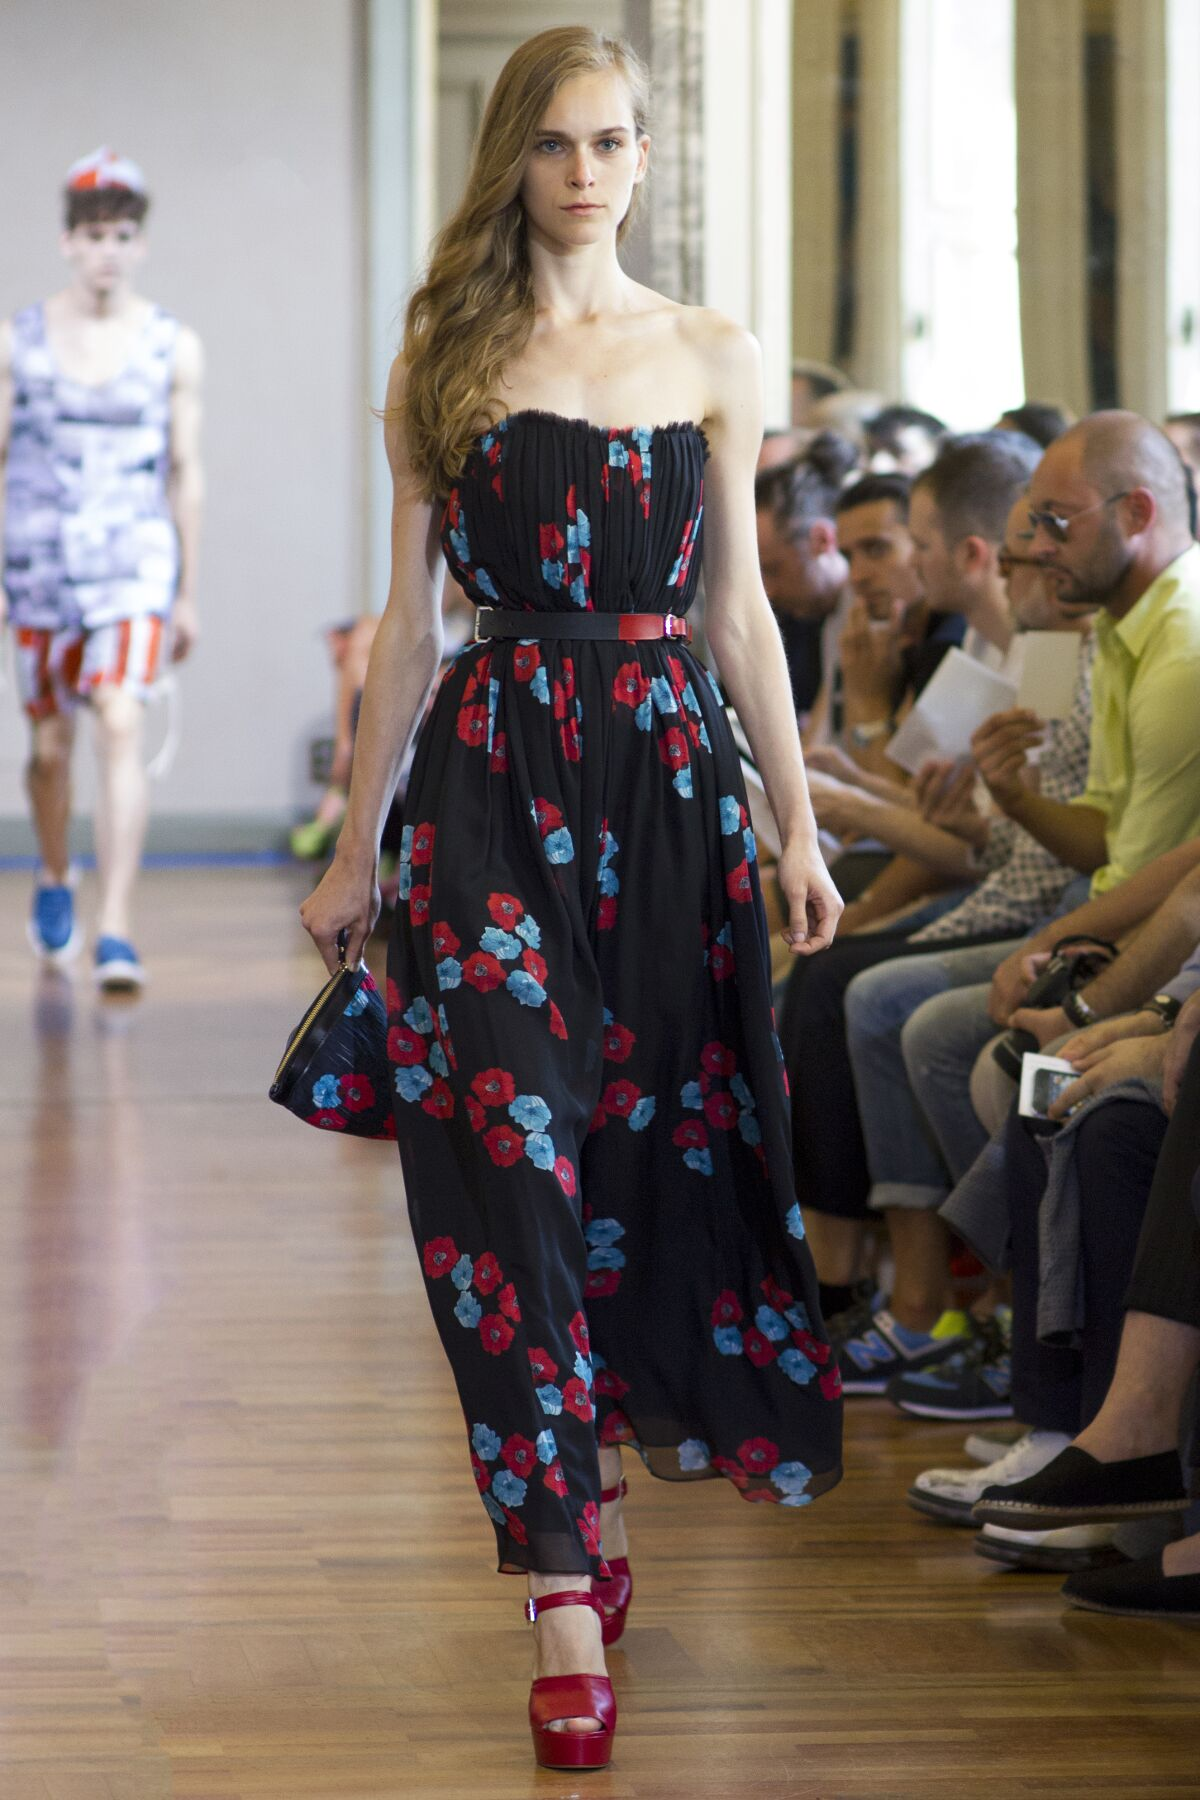 Summer Dress Trends 2014 Woman Milan